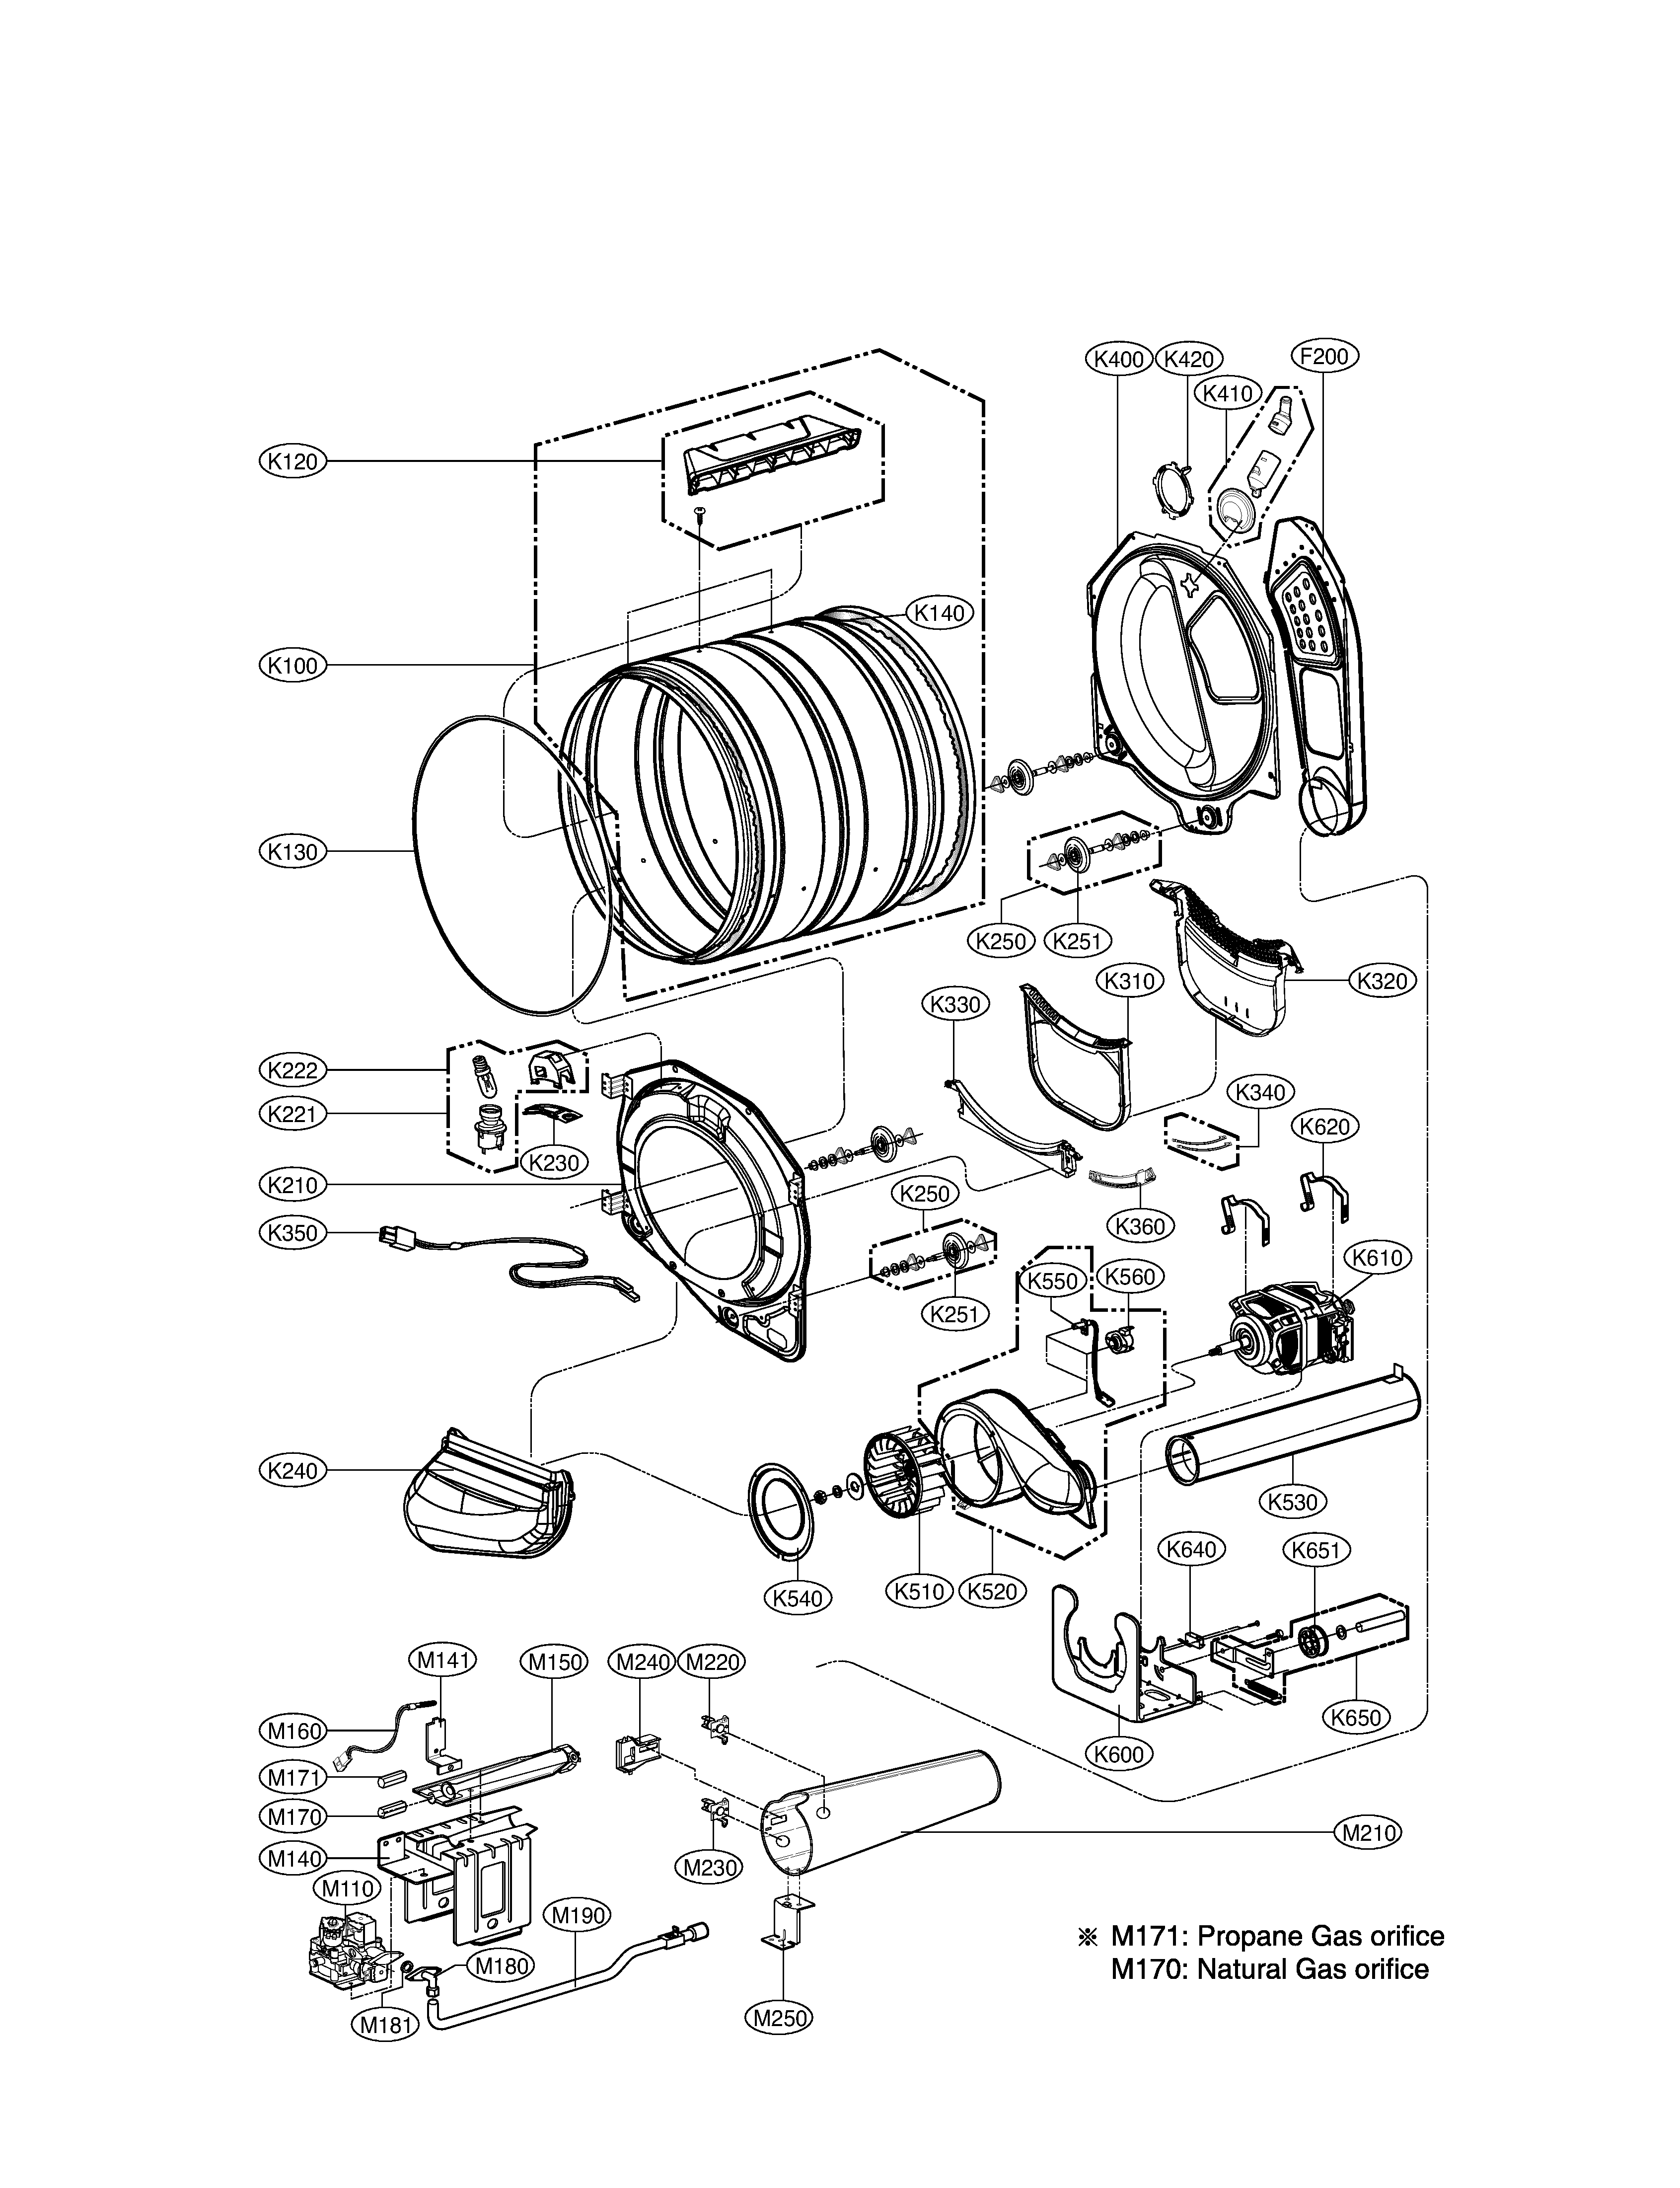 hight resolution of drum motor diagram and parts list for lg dryer parts model diagram dishwasher parts diagram ge dryer parts diagram dometic